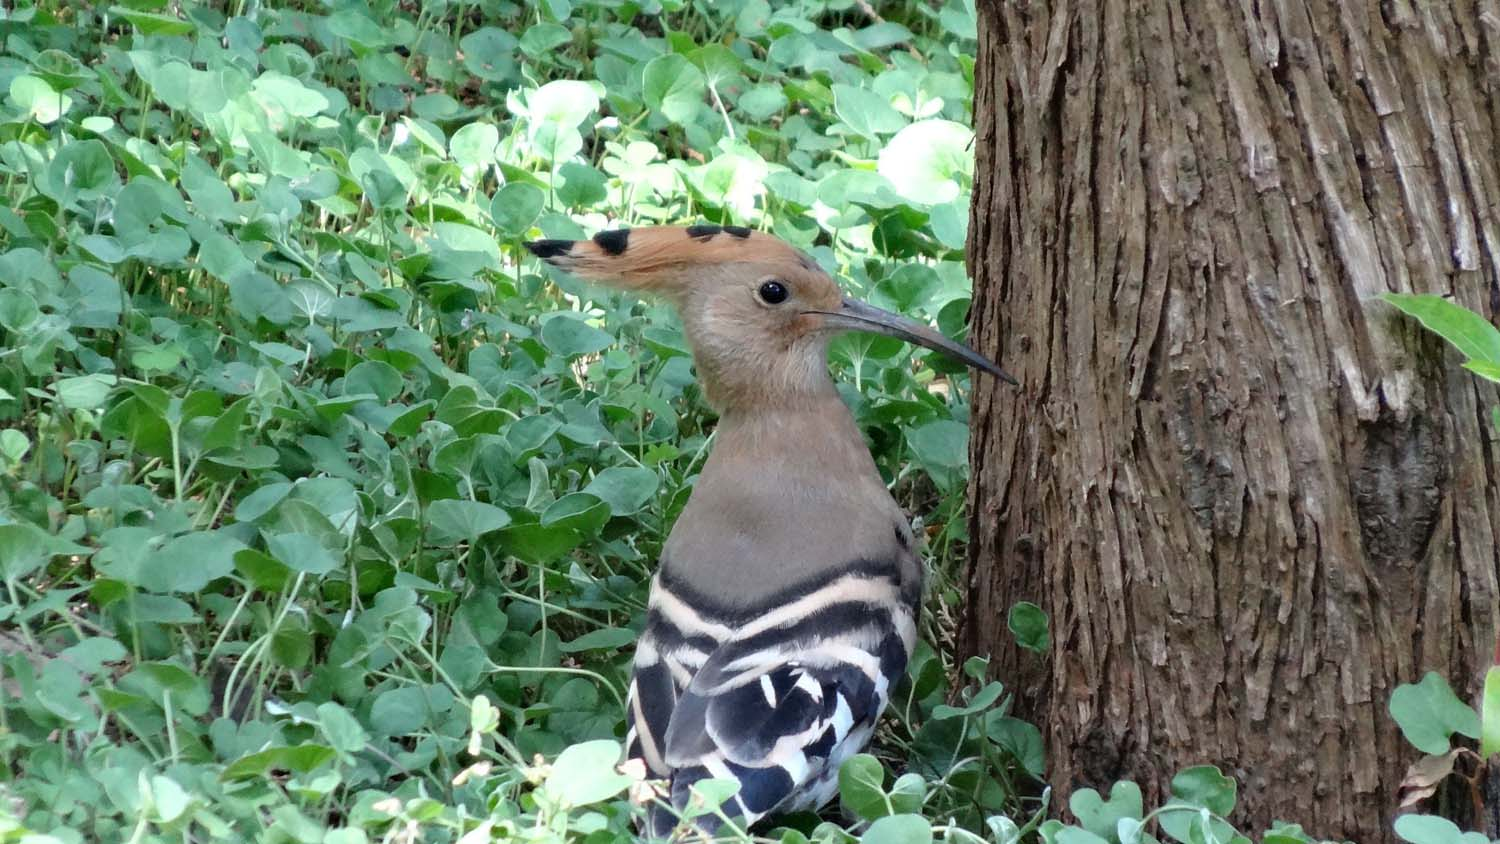 common hoopoe, I like his funky headdress